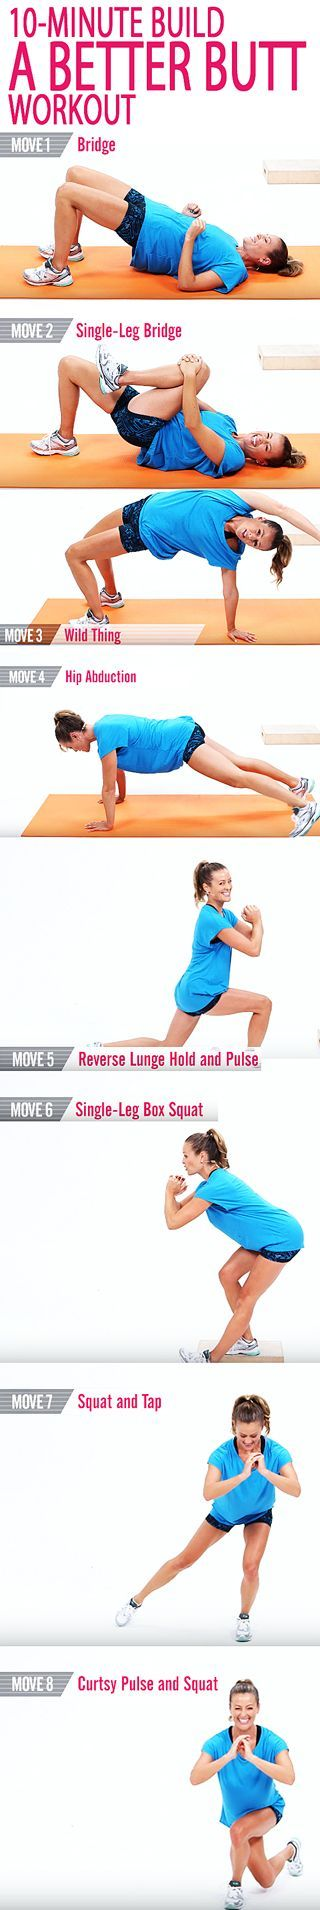 Try these amazingly simple workouts for a bigger, stronger booty!